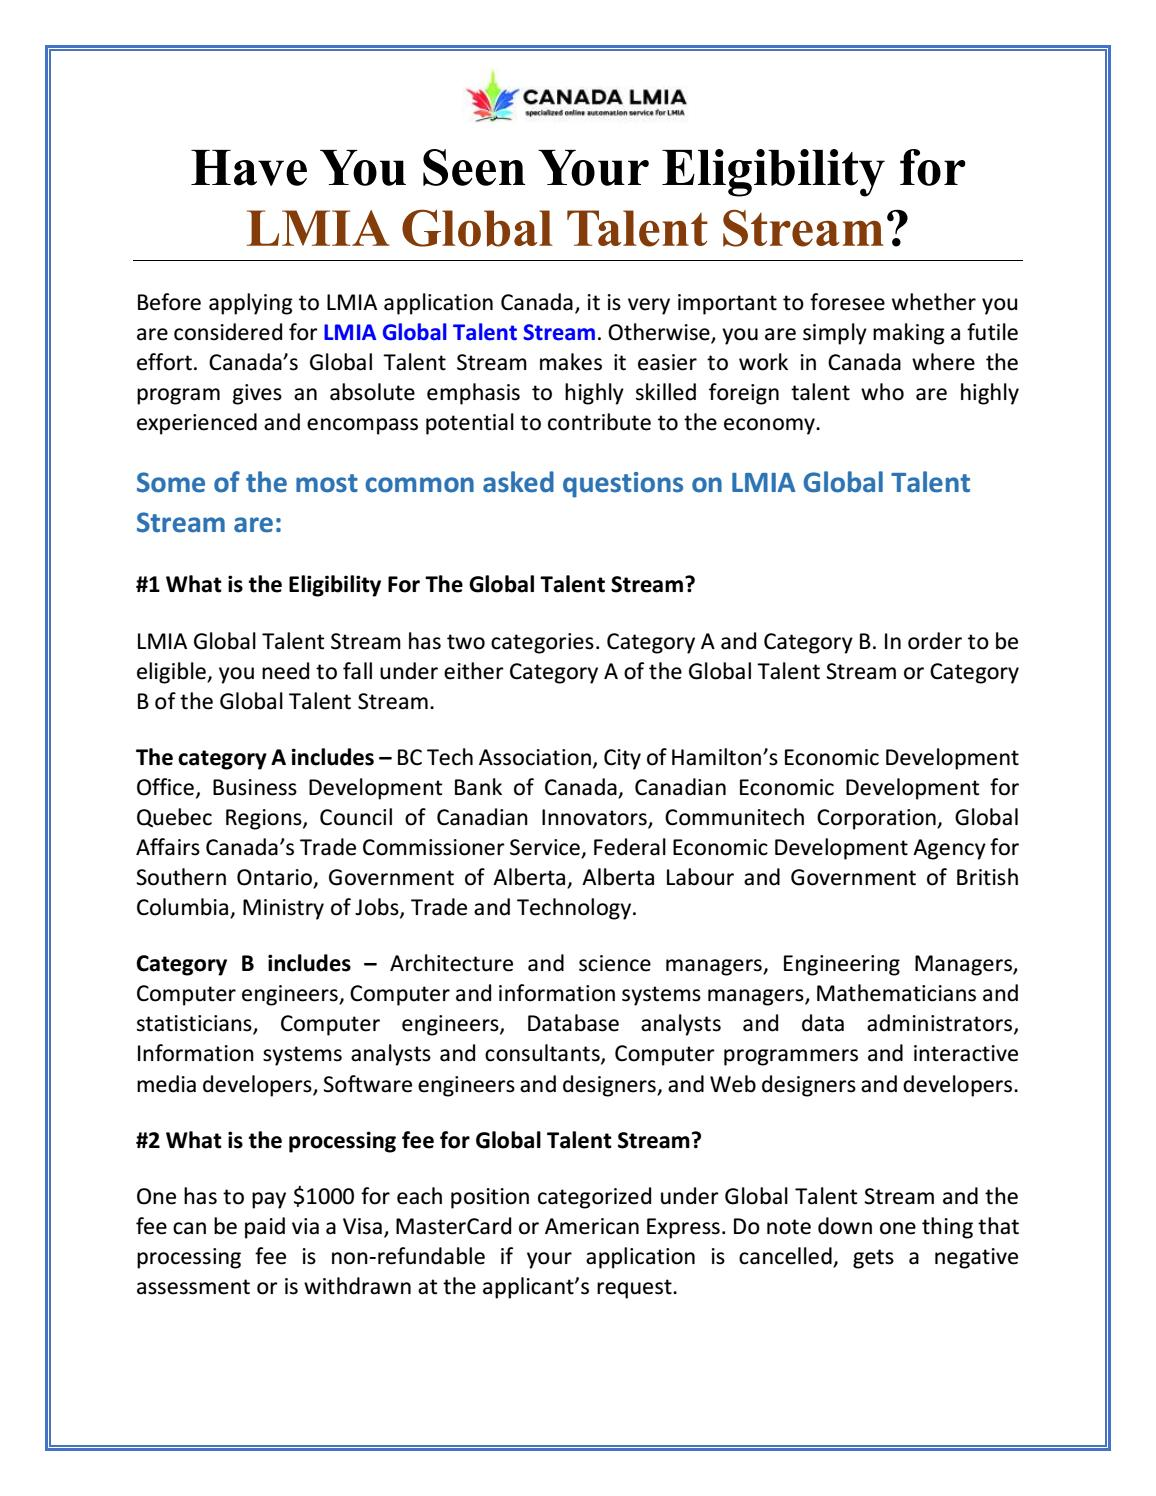 Have You Seen Your Eligibility for LMIA Global Talent Stream